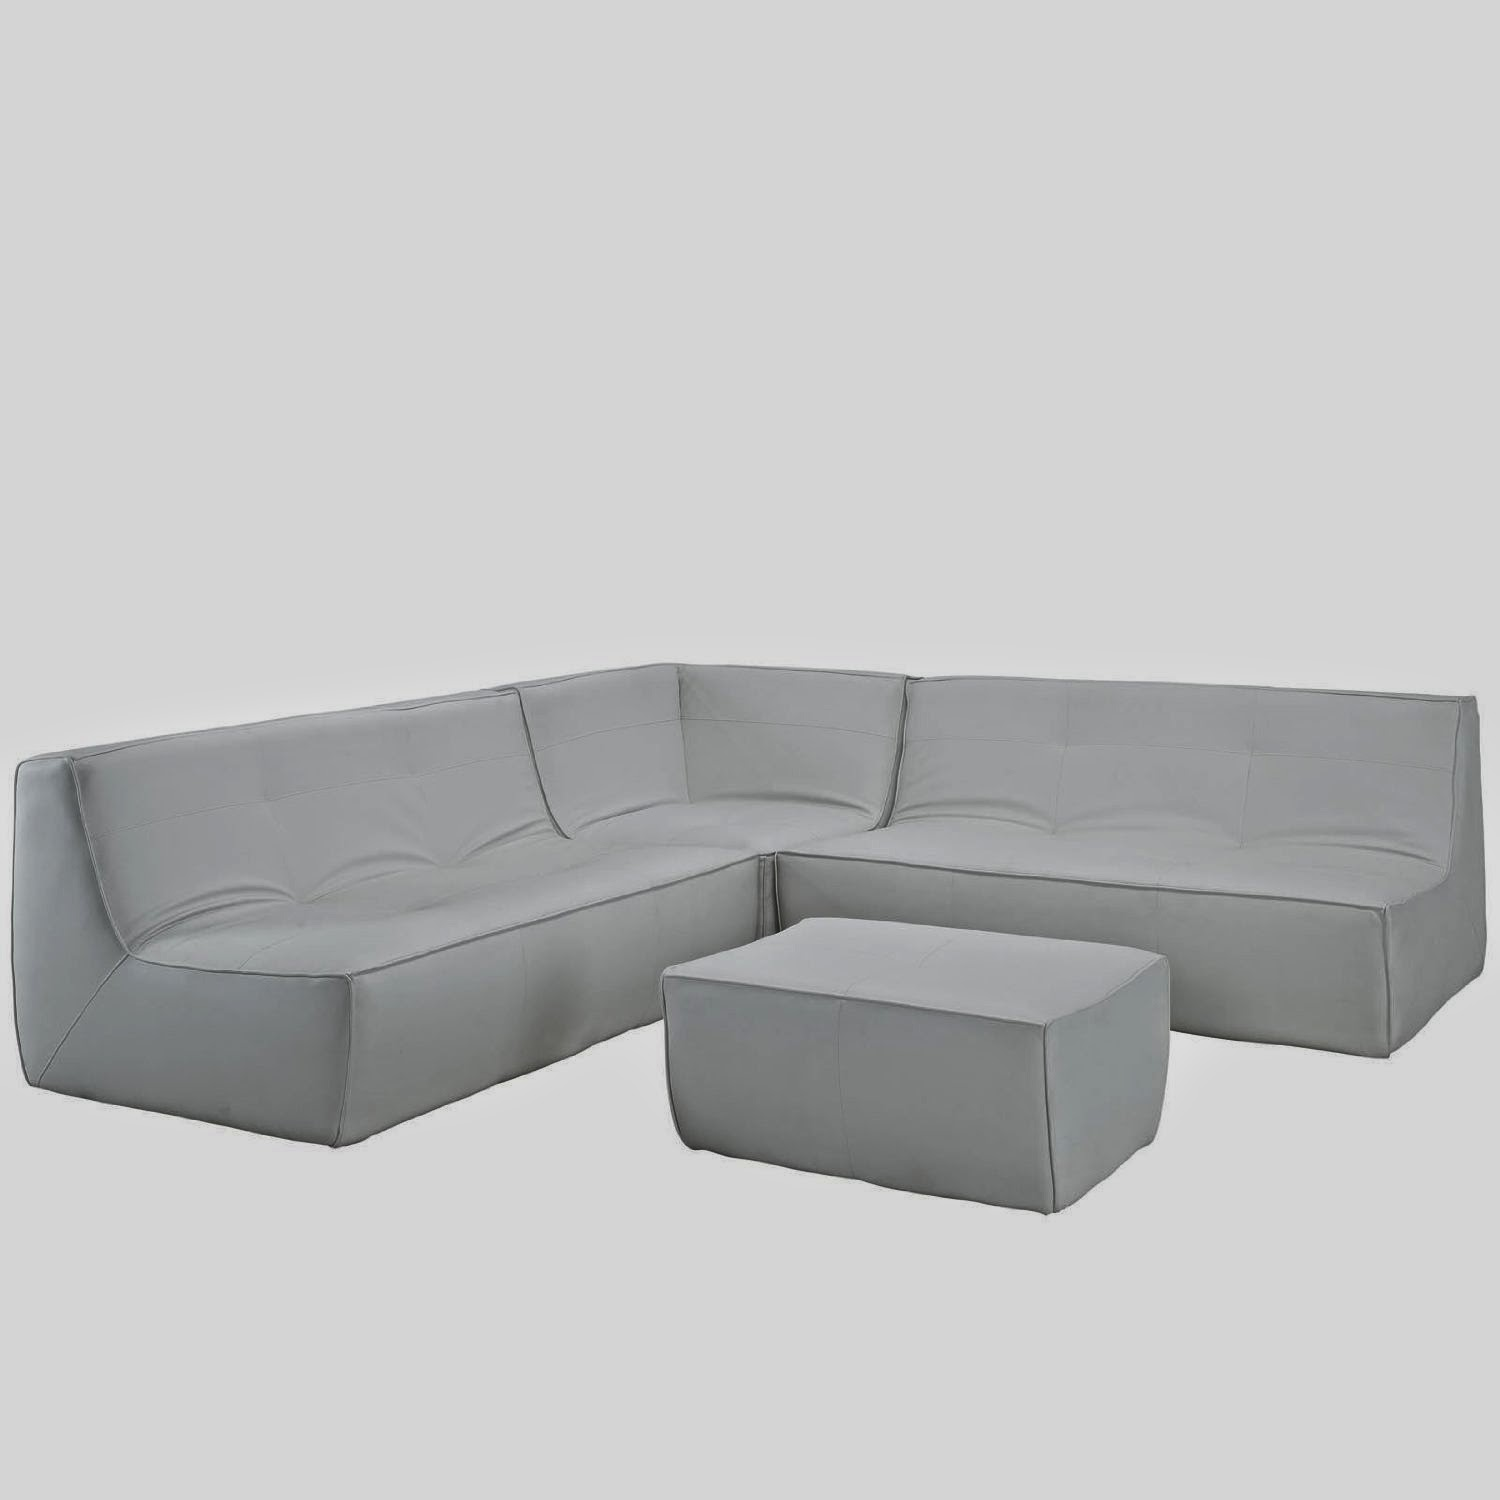 White Leather Couch Modern White Leather Couch